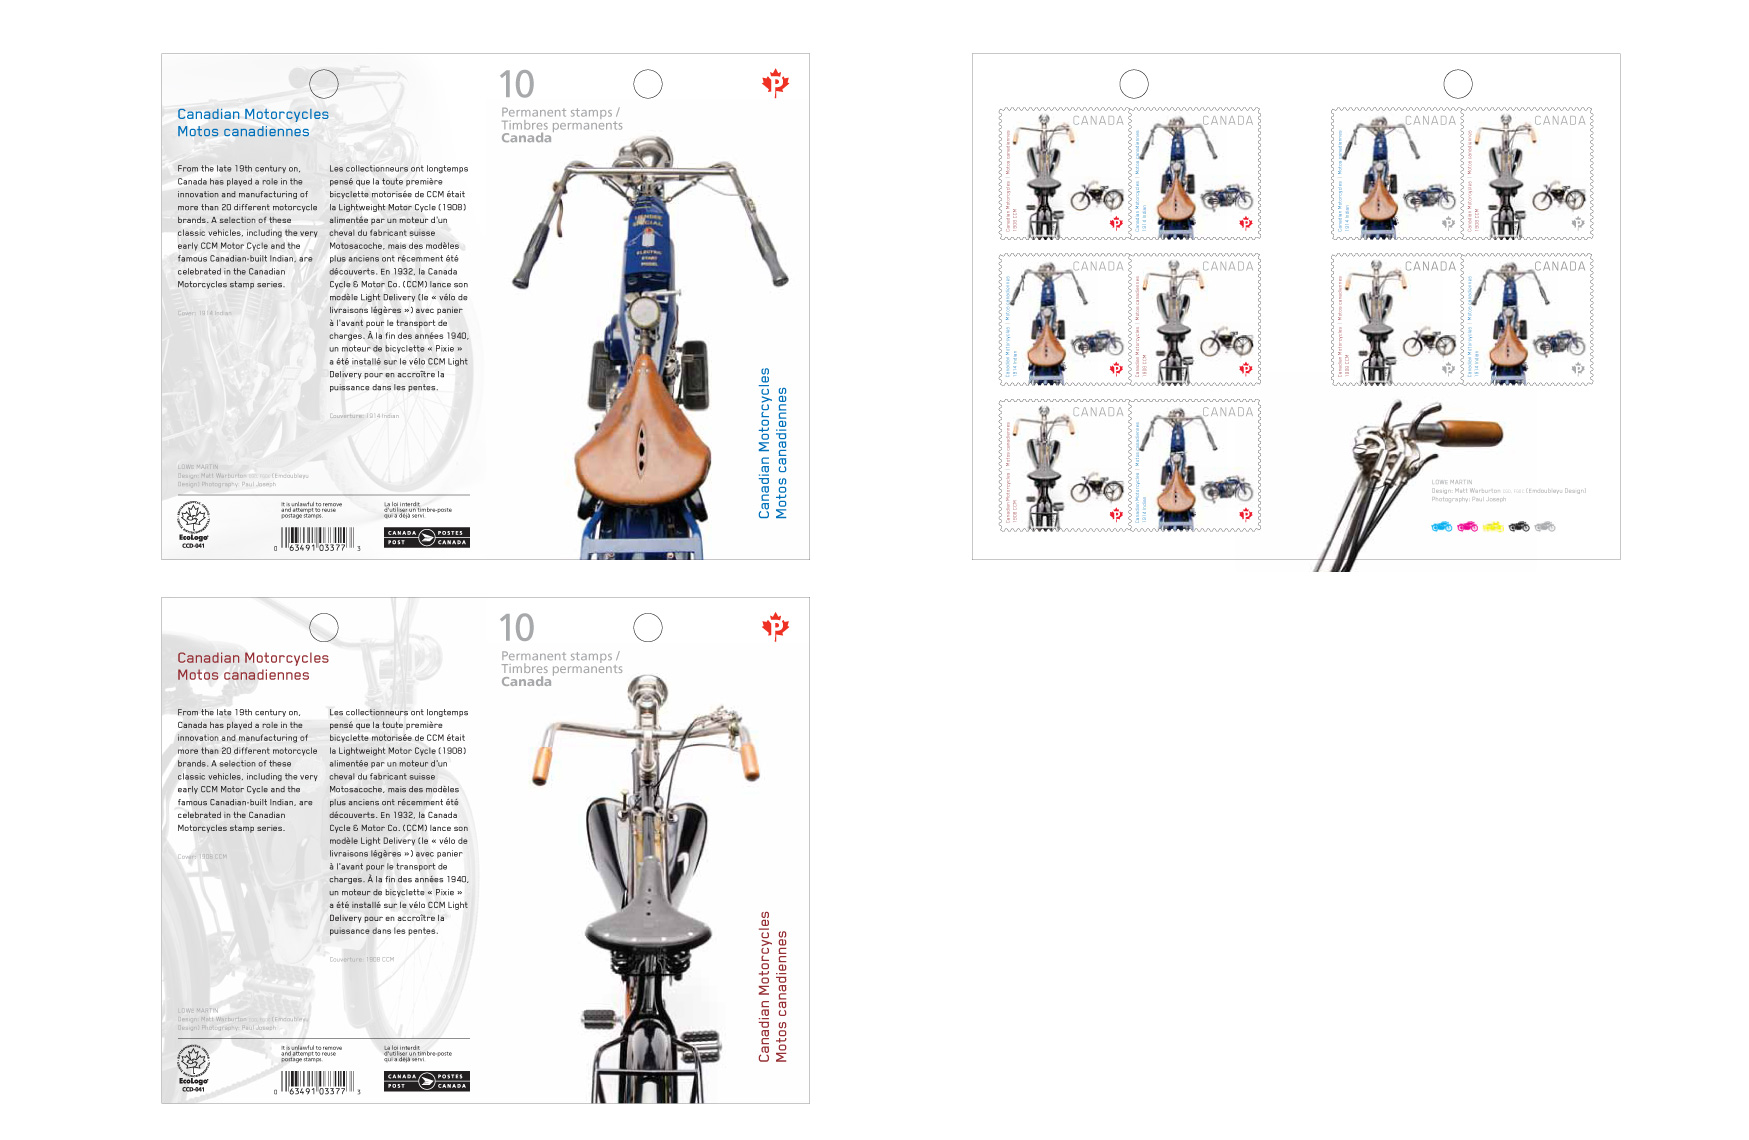 Motorcycles-2013-Booklet_Comm_Perm_Hor_E_F-2-DUP.jpg